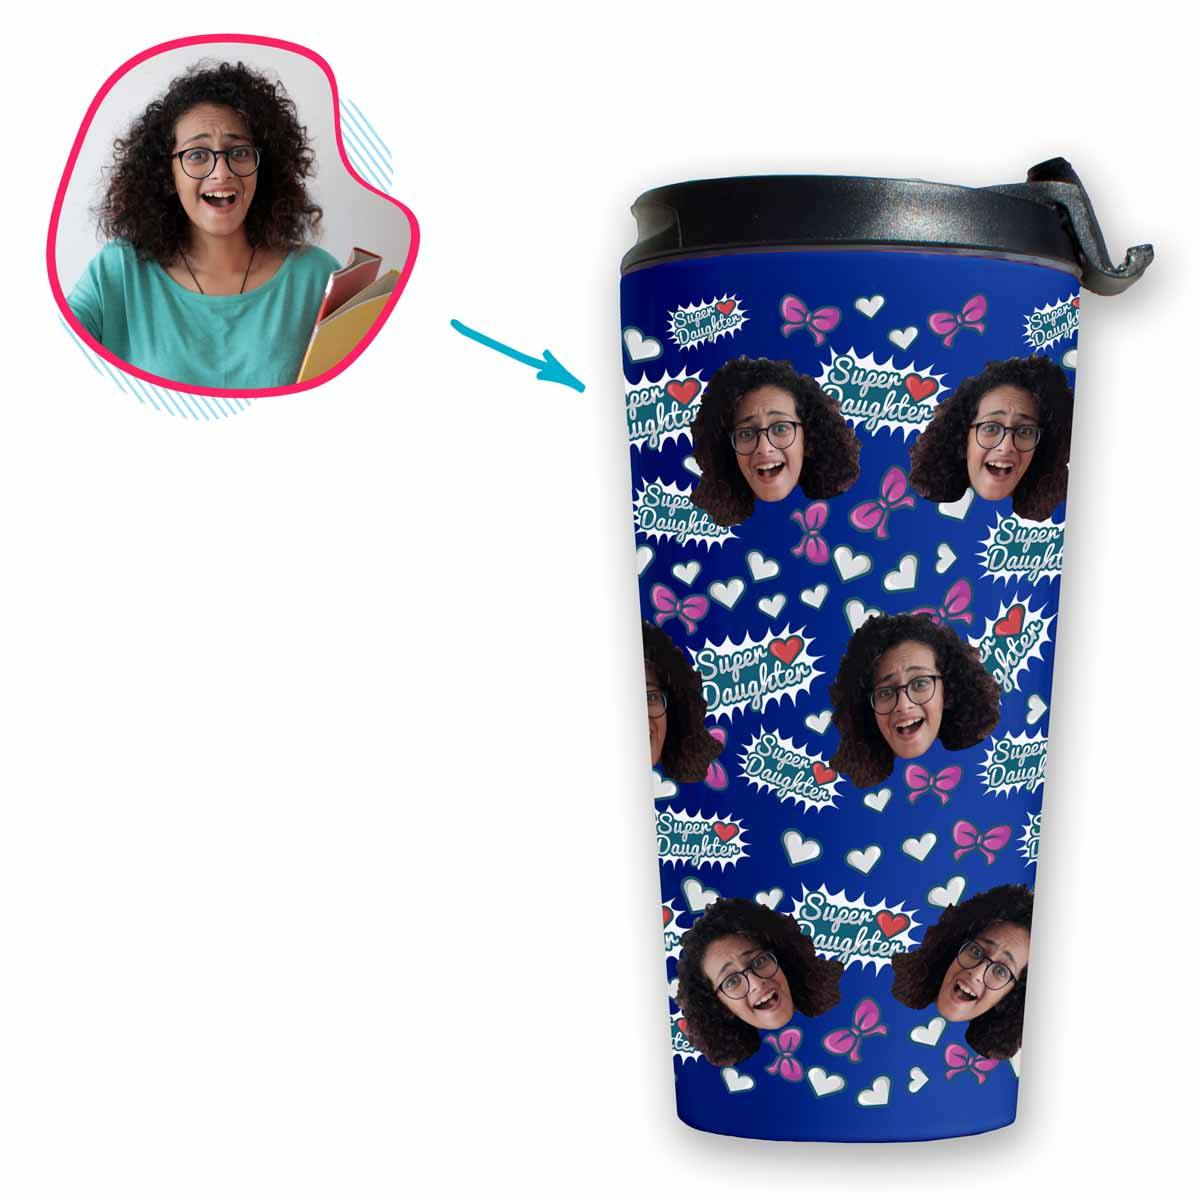 darkblue Super Daughter travel mug personalized with photo of face printed on it